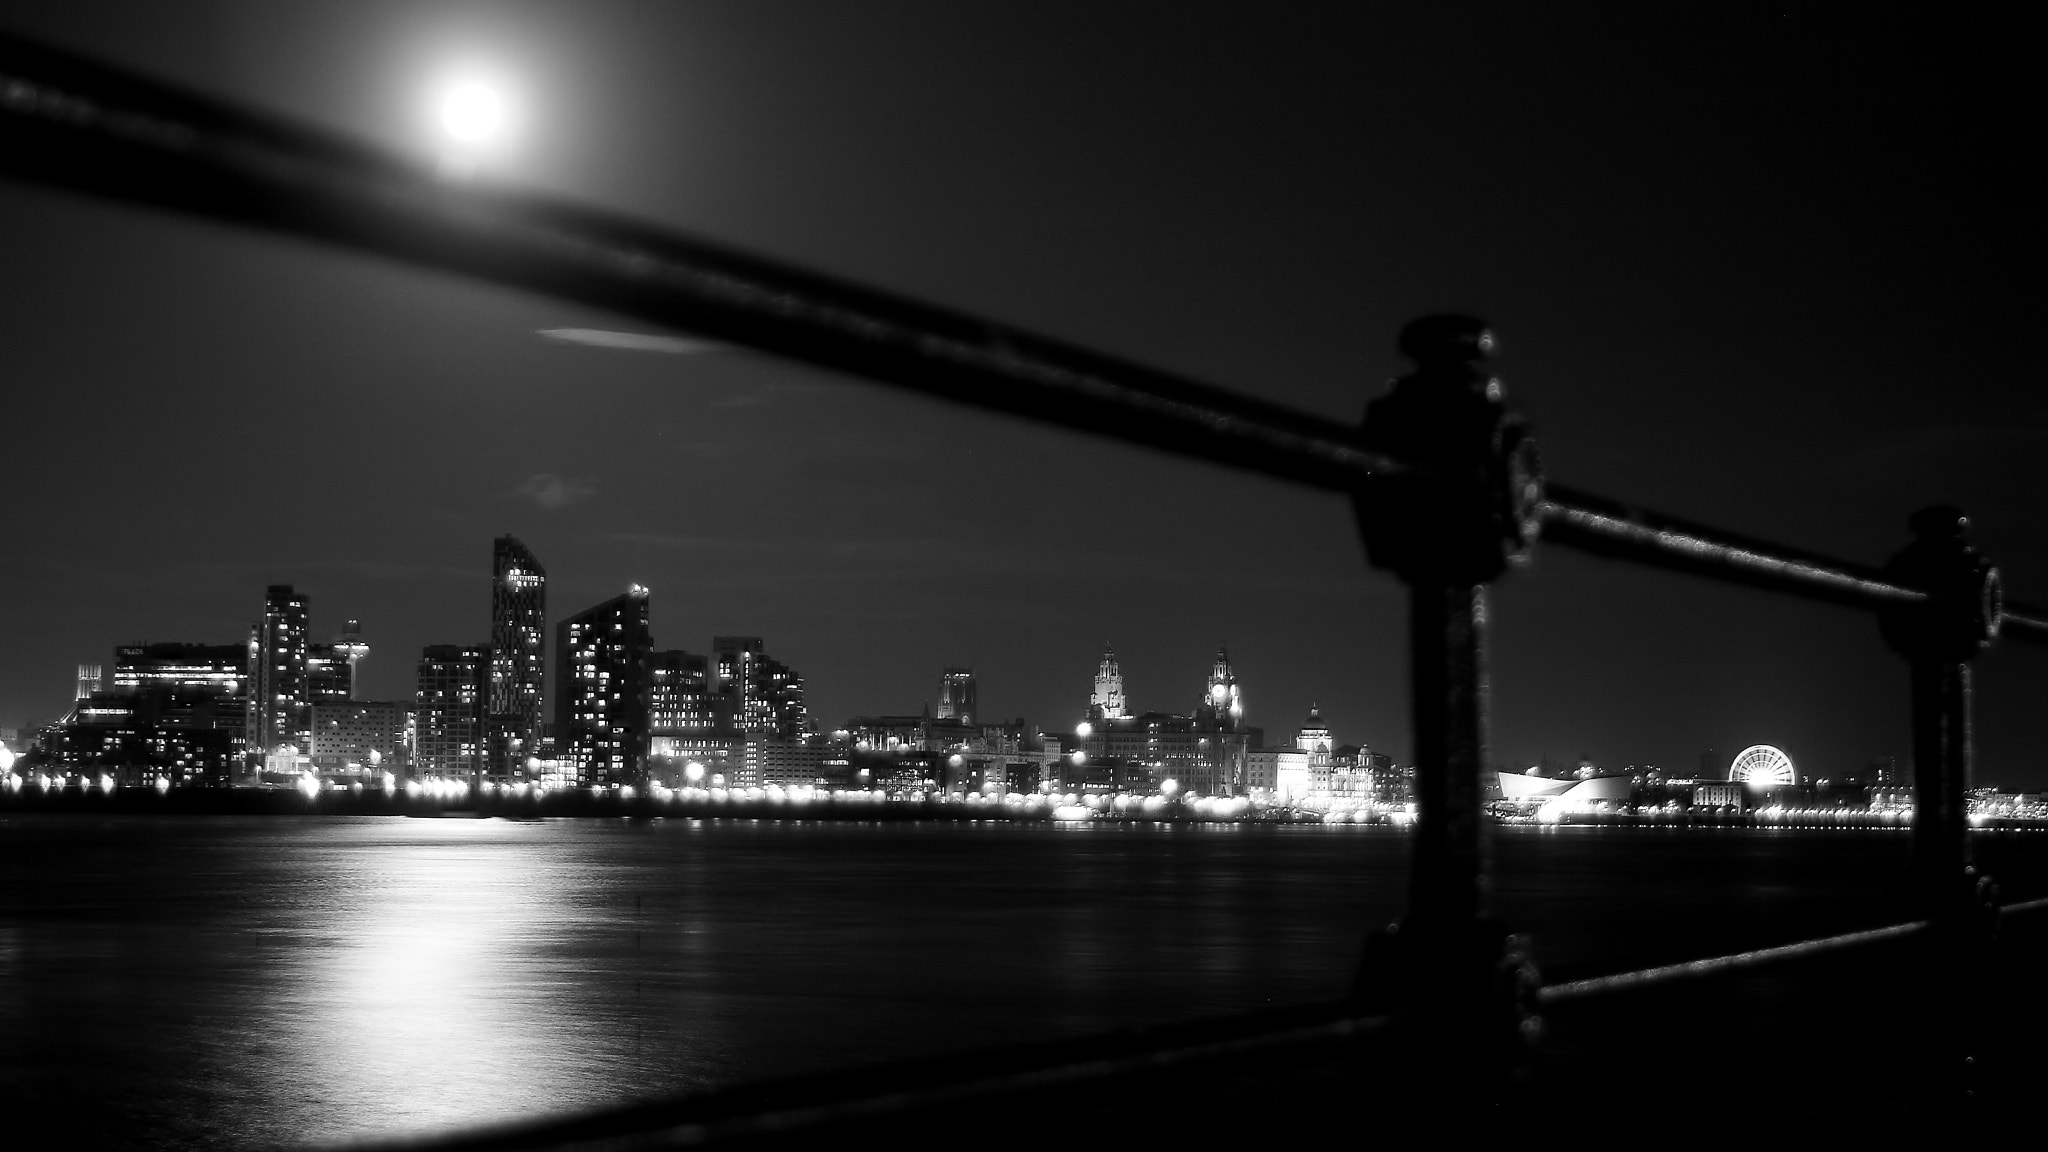 Photograph MOONRISE LIVERPOOL b&w by Conor Jordan on 500px